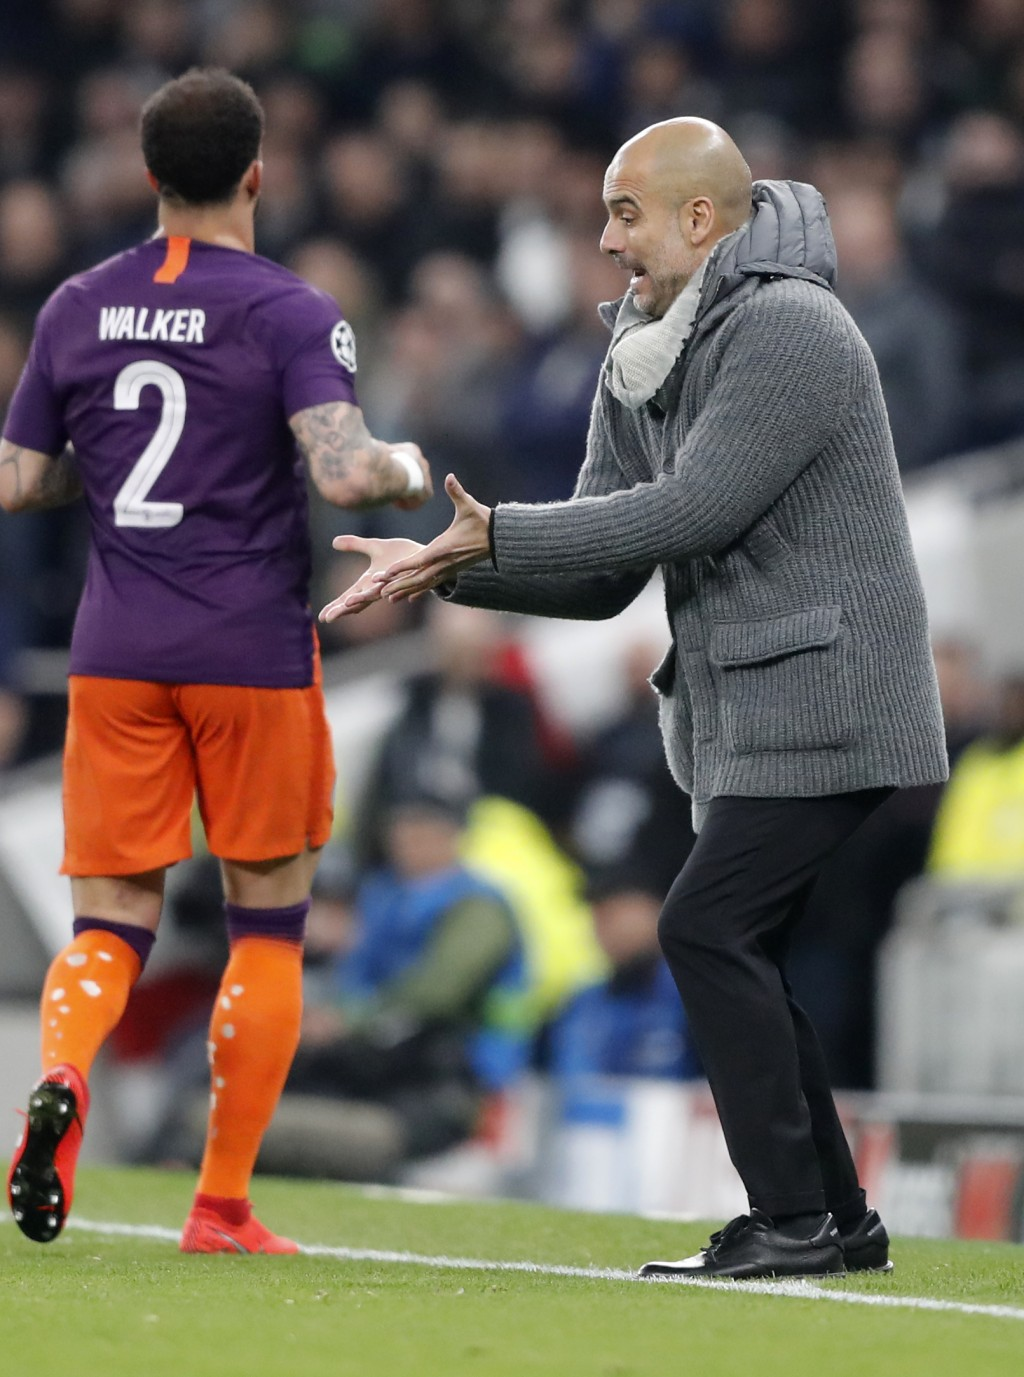 Manchester City coach Pep Guardiola gestures during the Champions League, round of 8, first-leg soccer match between Tottenham Hotspur and Manchester